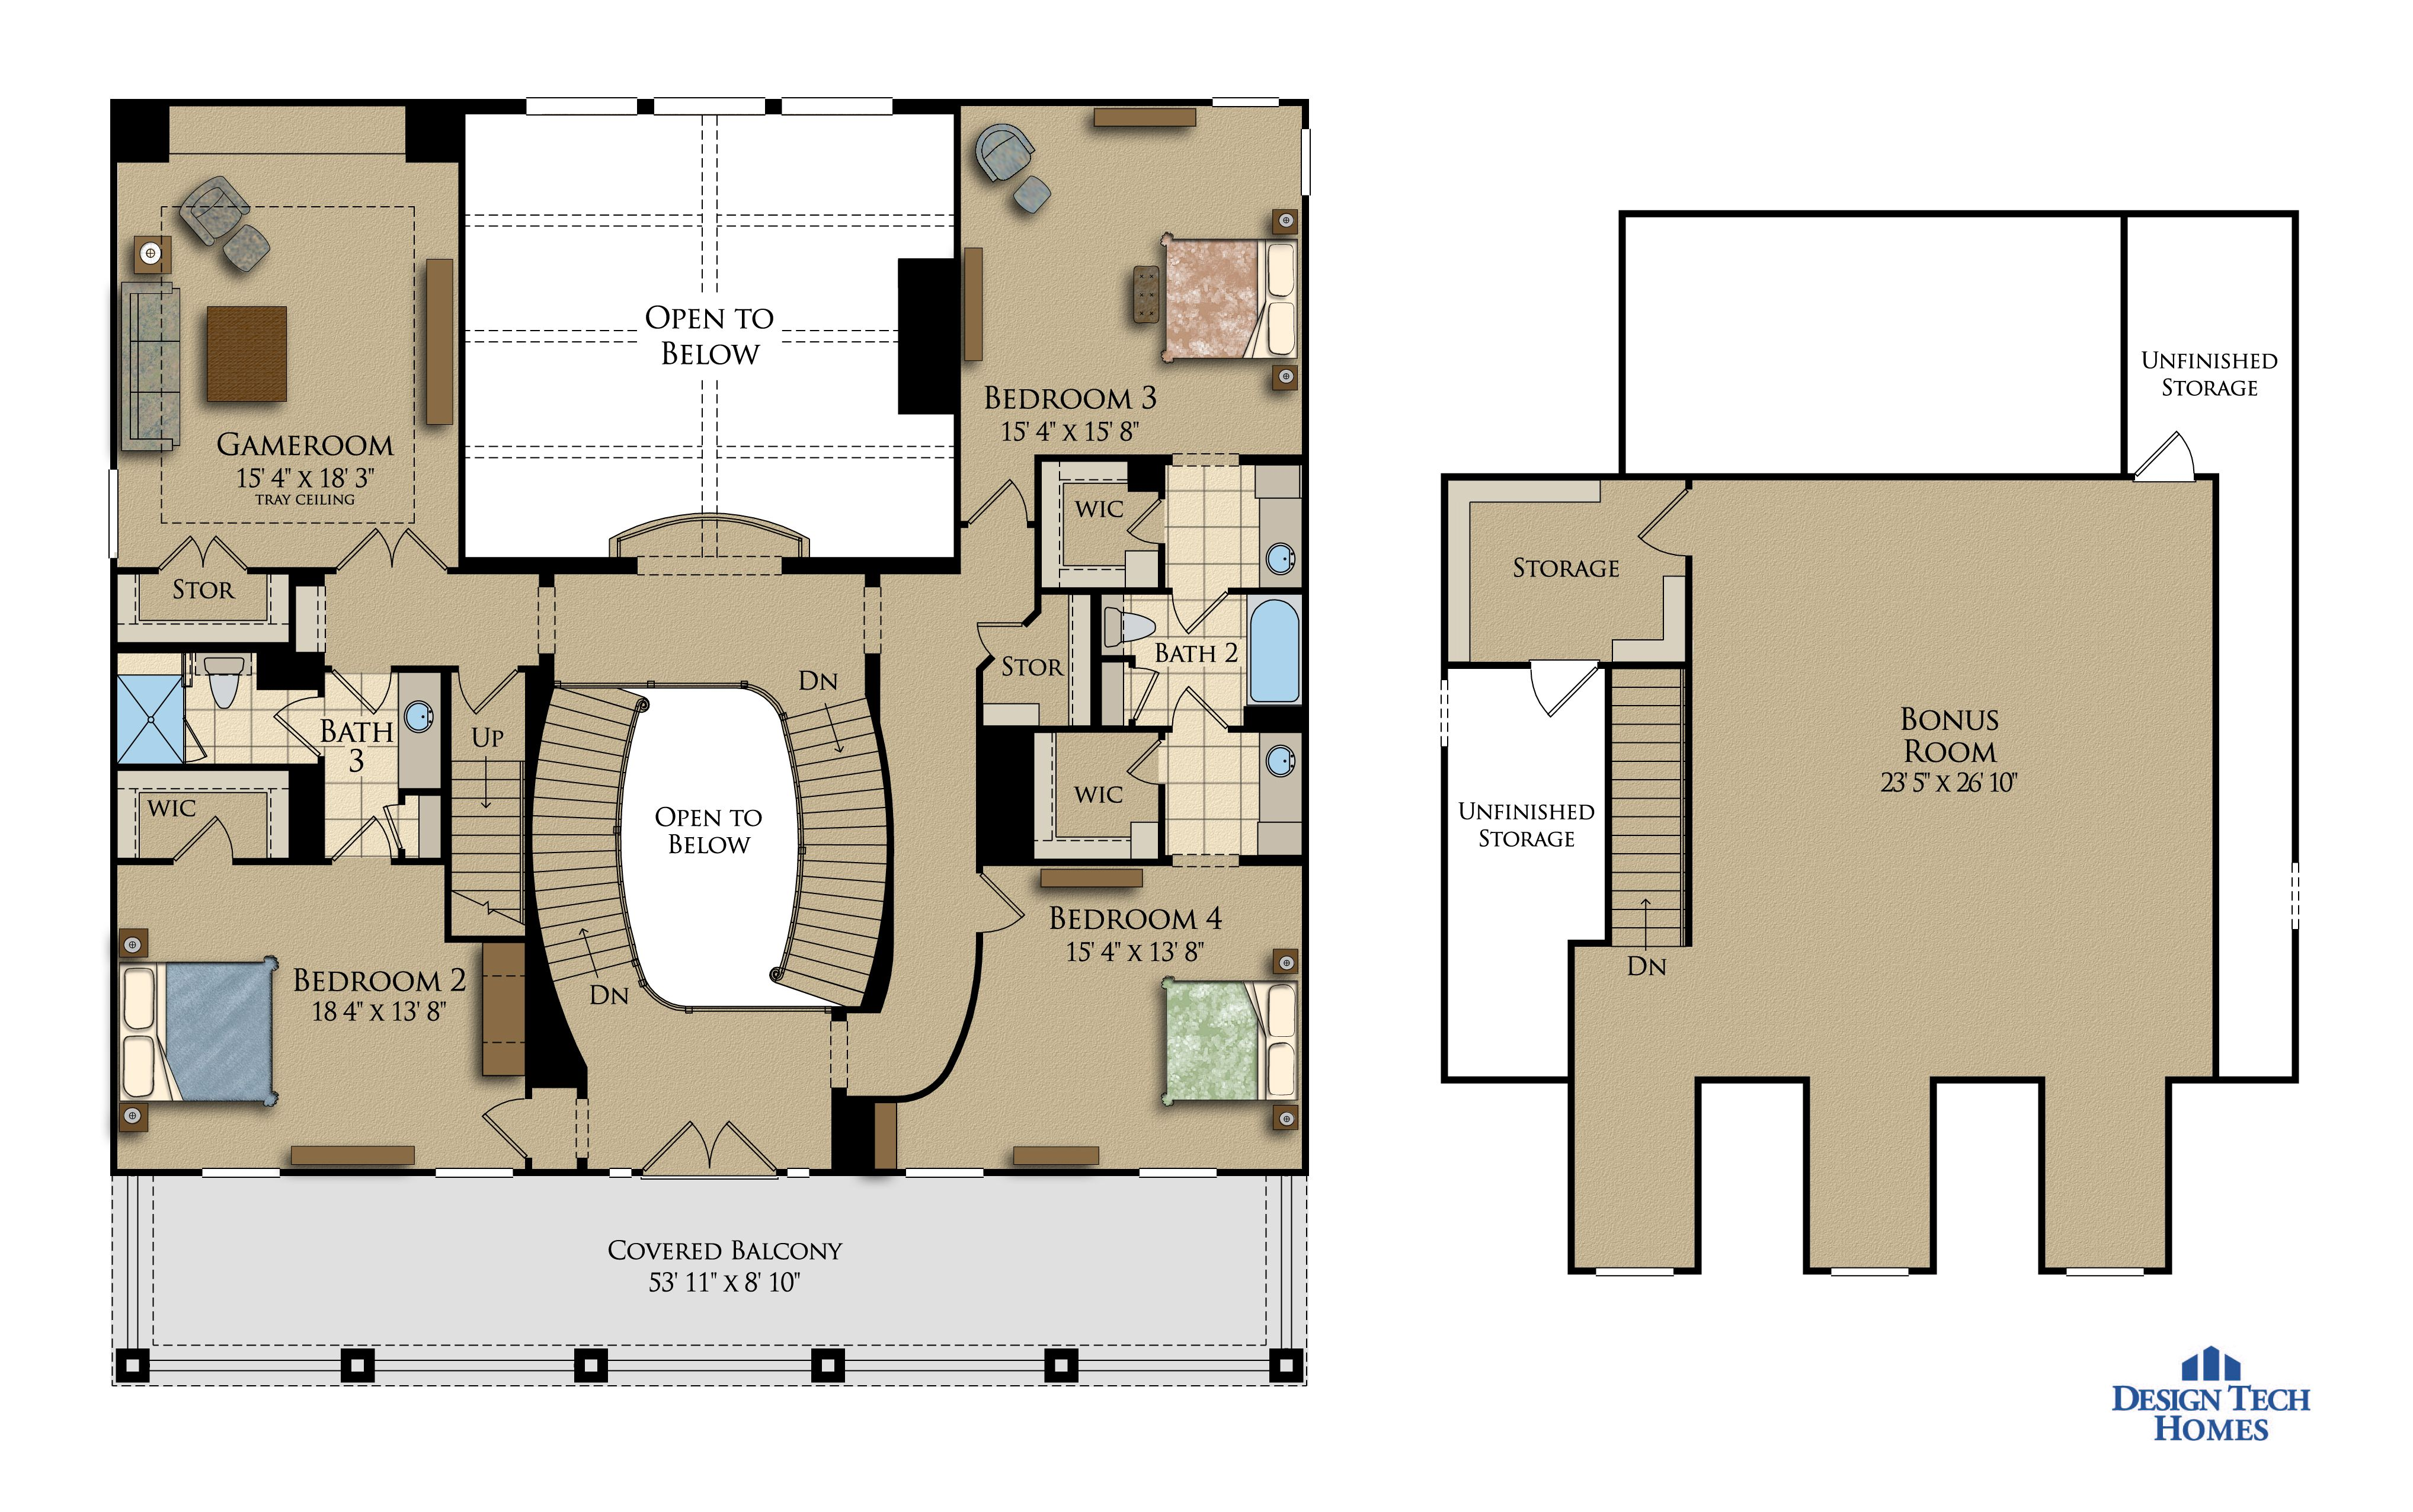 5.070 Sq Ft House Plan - 4 Bed 3.5 Bath, 2.5 Story - The Alexandria ...